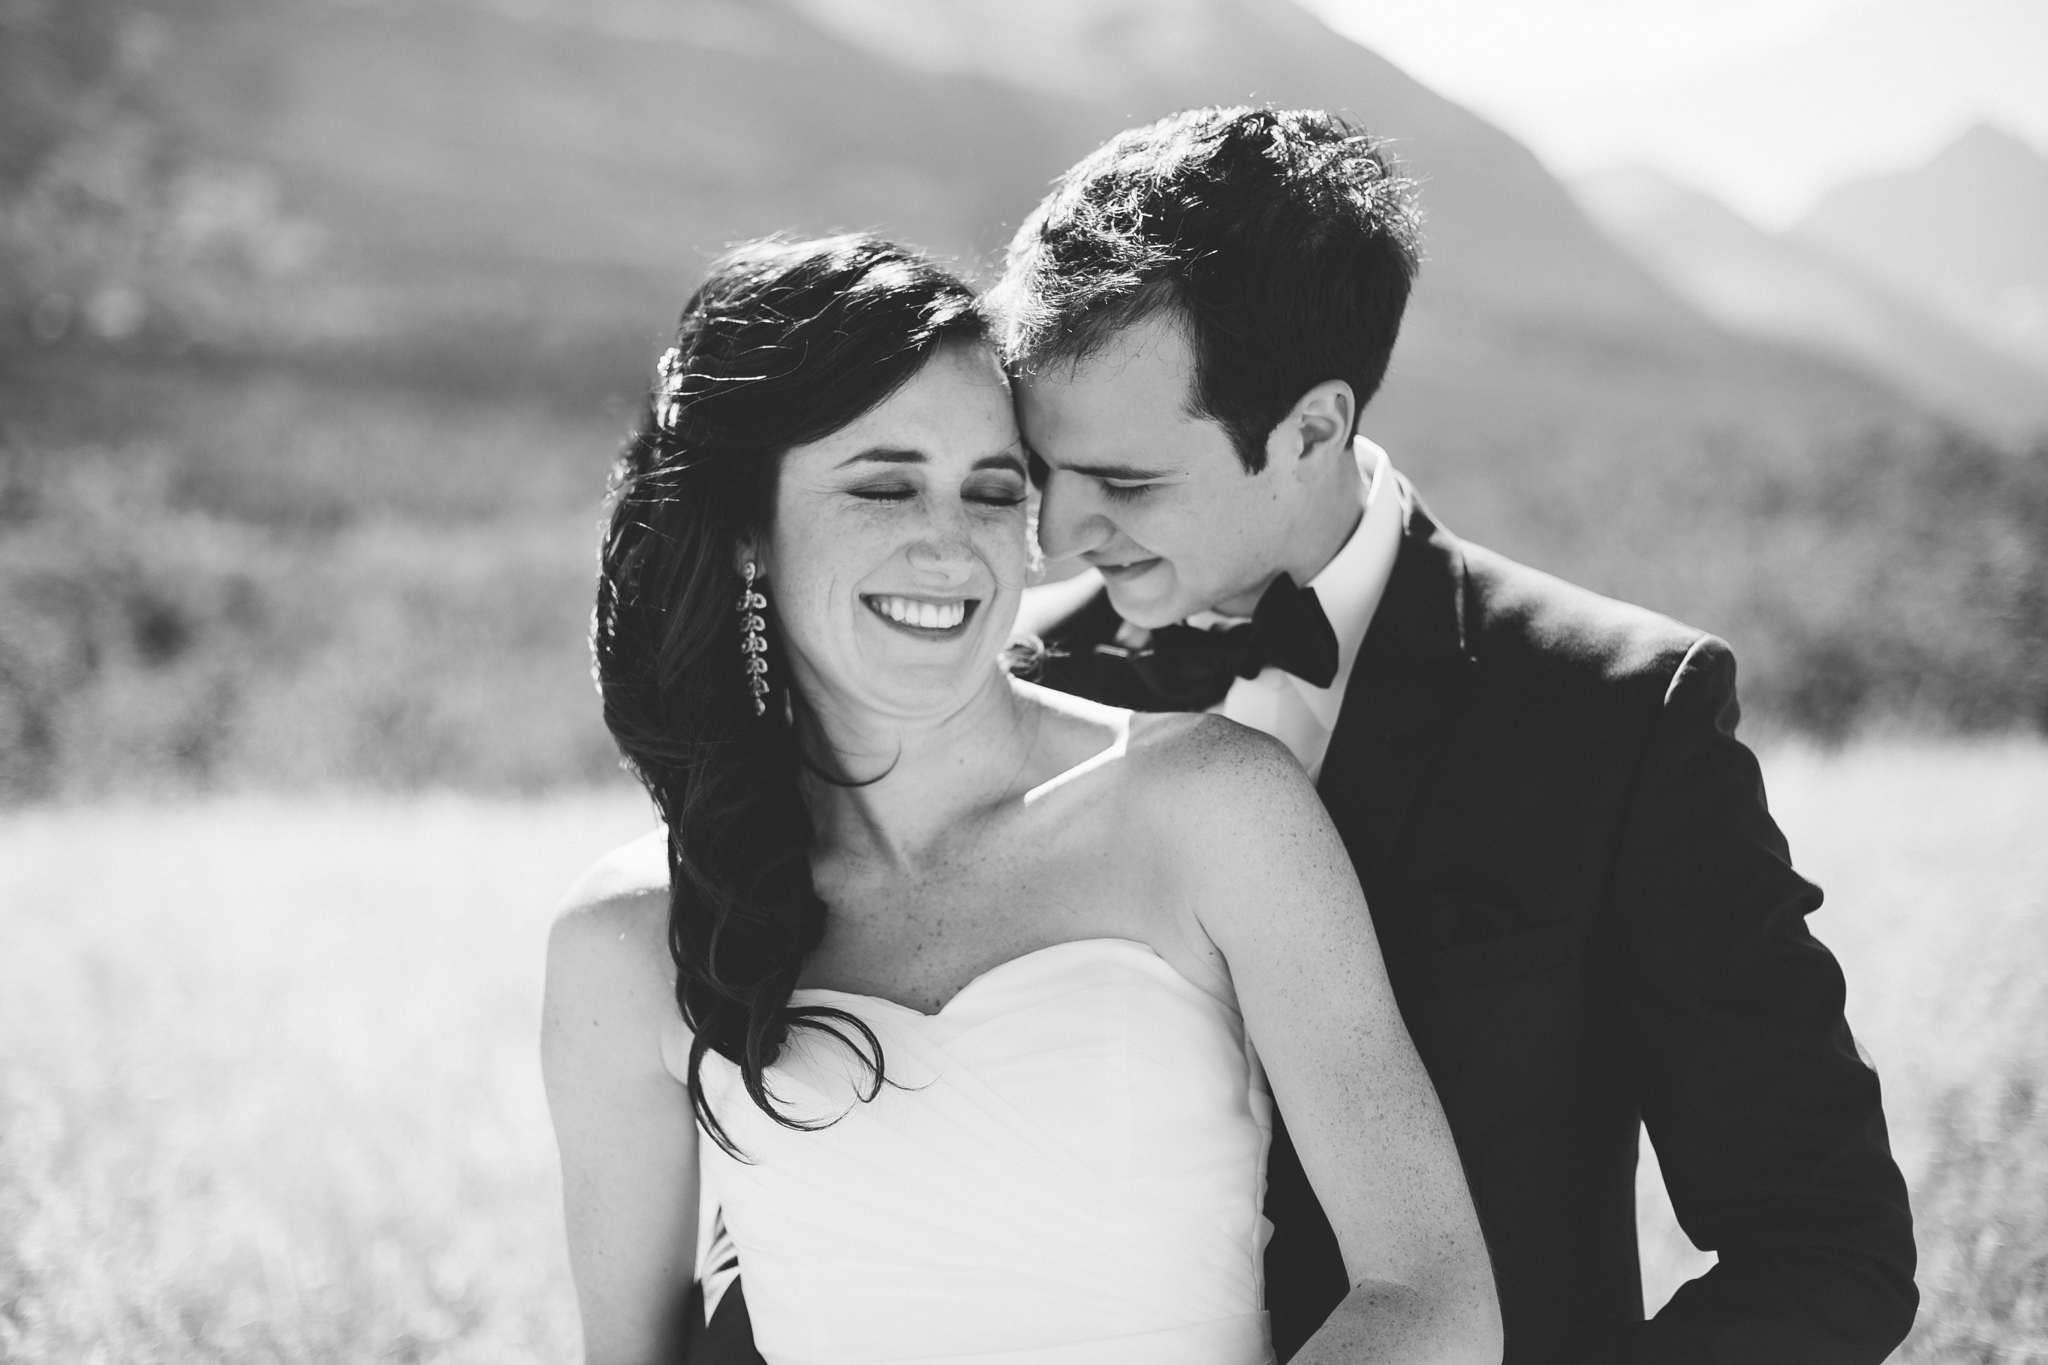 waterton-wedding-photographer-love-and-be-loved-photography-lethbridge-calgary-adam-jodie-image-picture-photo-104.jpg